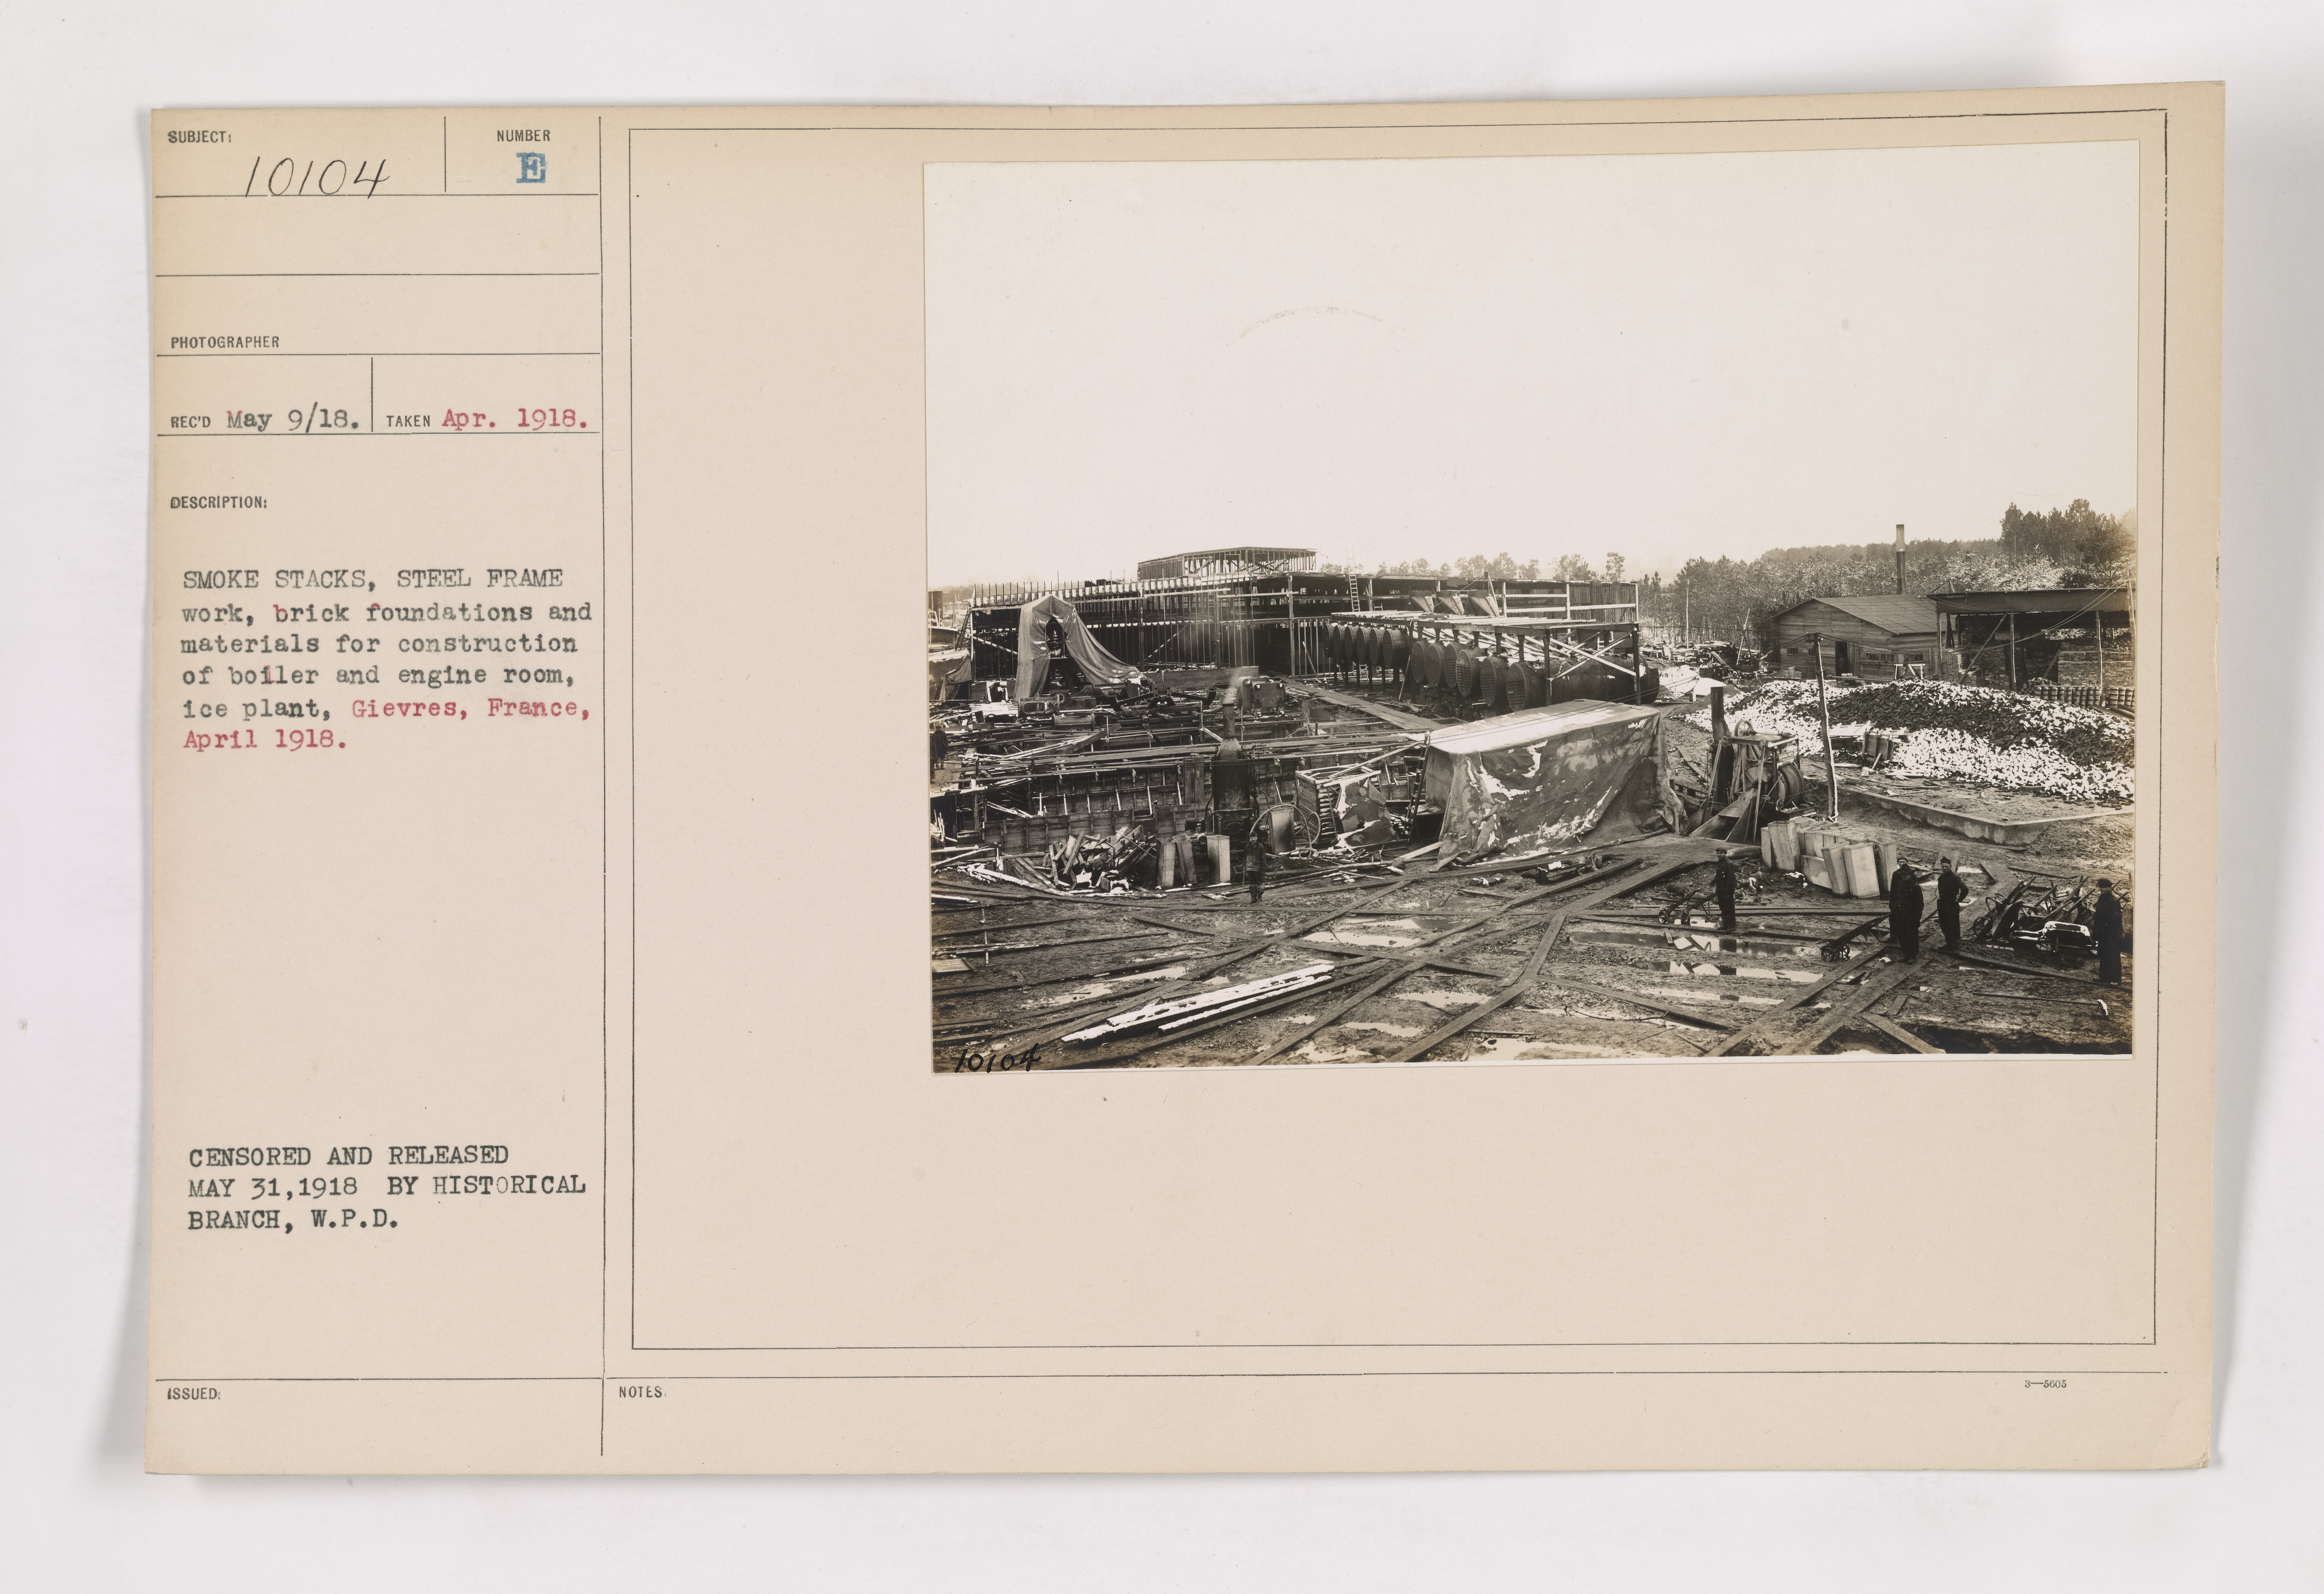 111-SC-10104 - Smoke stacks, steel frame work, brick foundations and materials for construction of boiler and engine room, ice plant. Gievres, France. April 1918